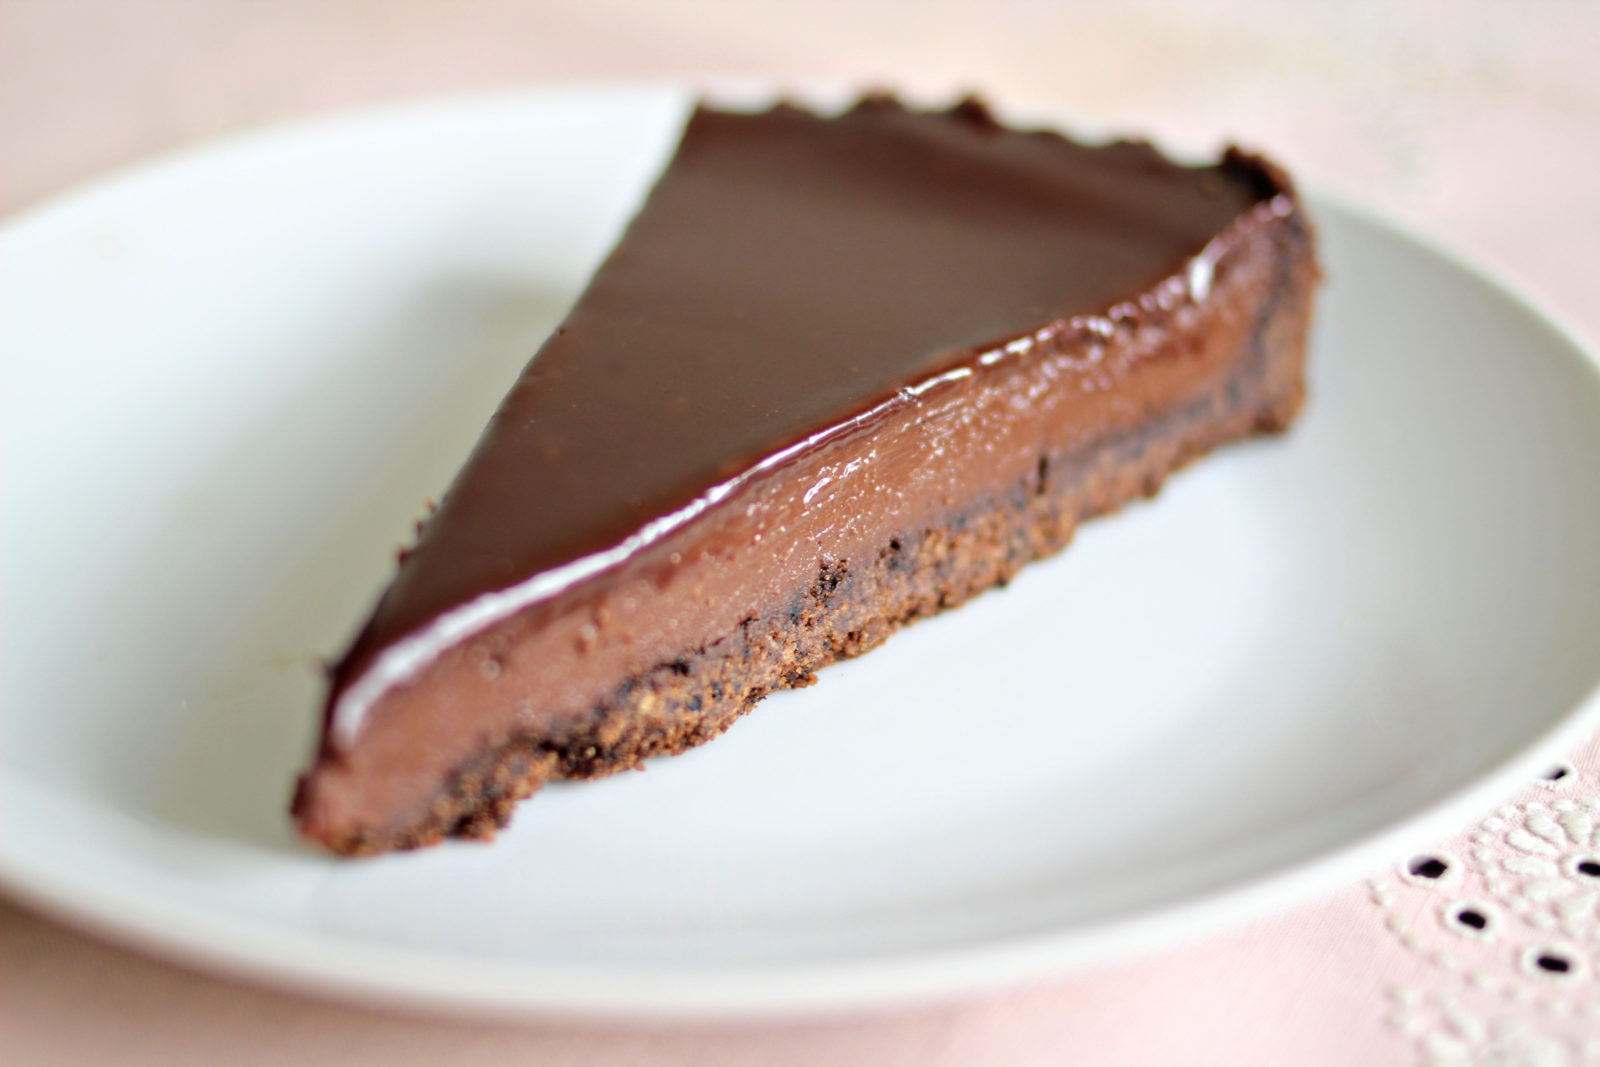 February 13, 2014 / Comments Off on Passionate Chocolate Ganash Tart